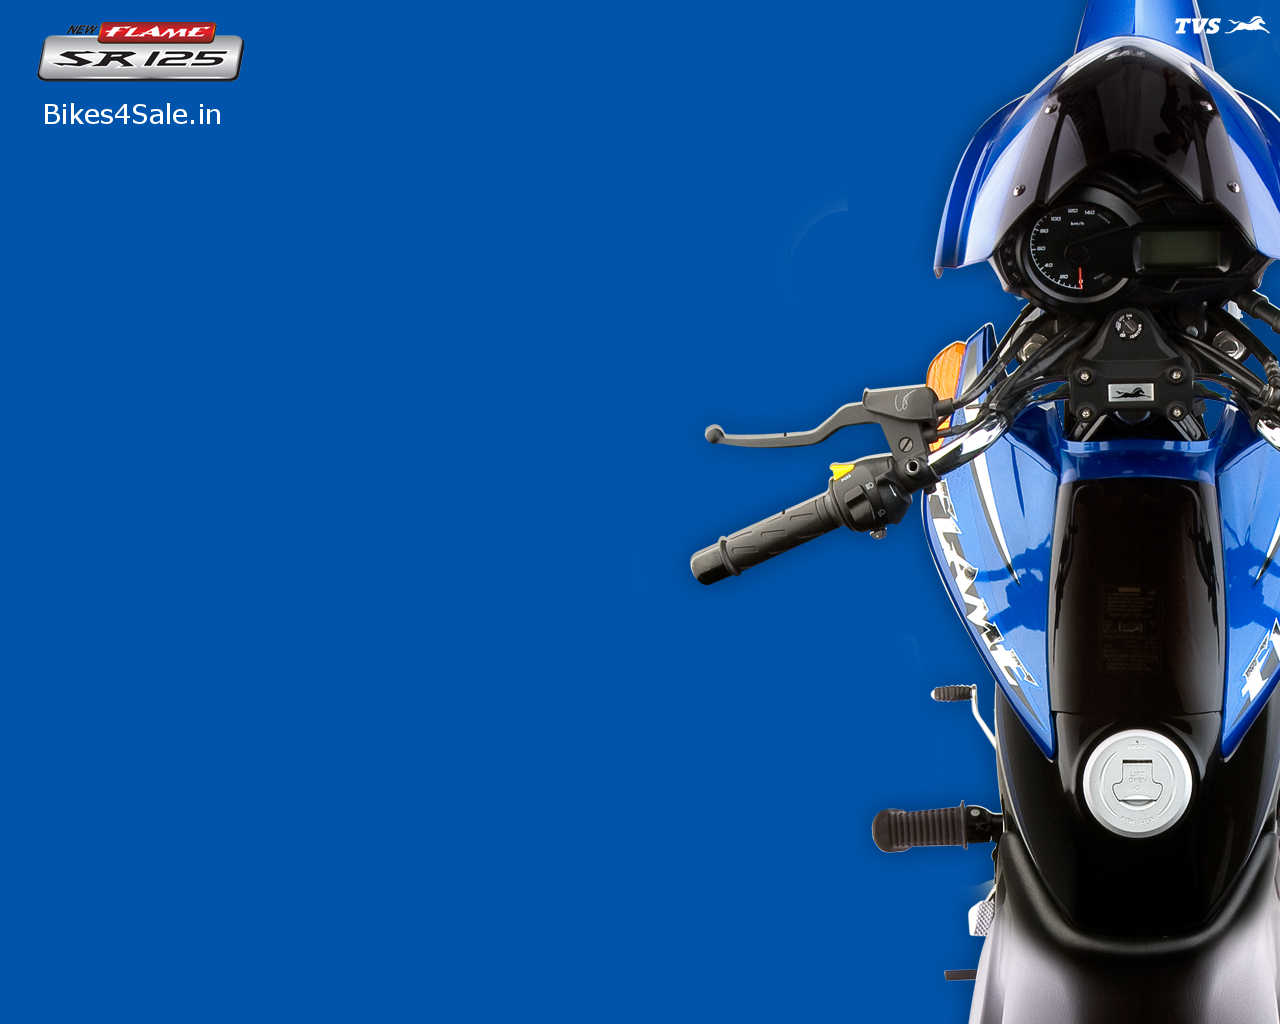 TVS Flame SR 125 Wallpaper